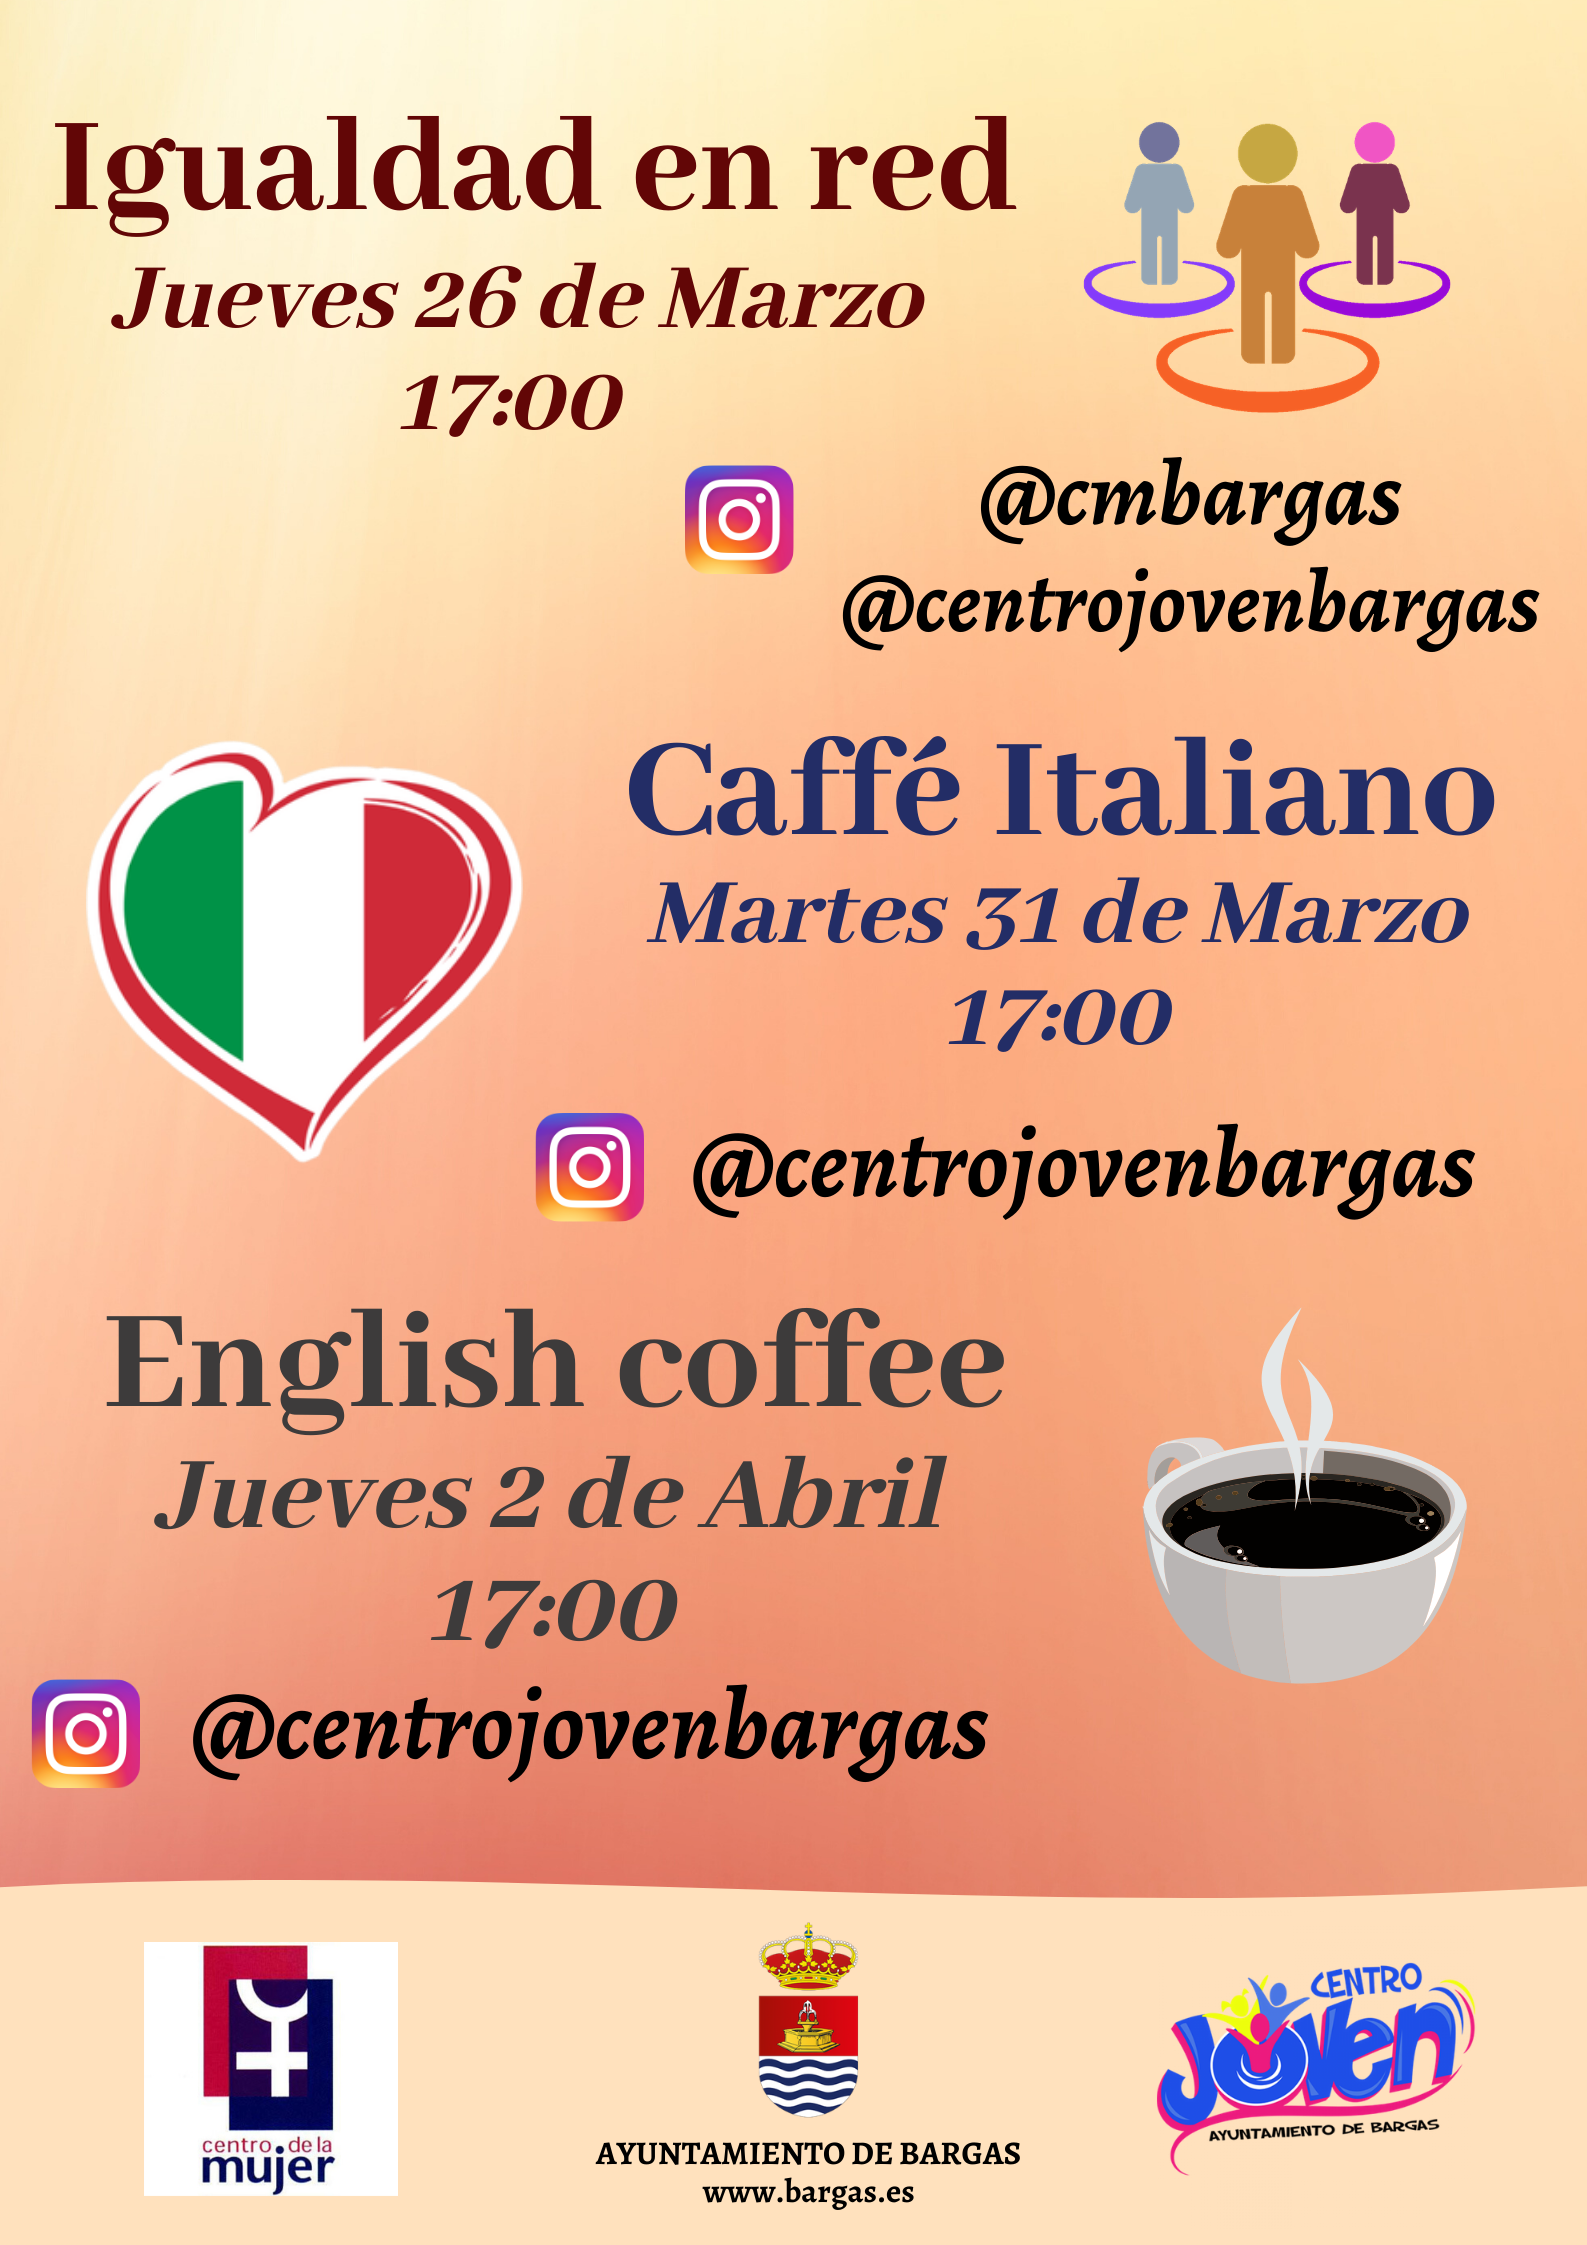 Igualdad en red – Caffé Italiano & English Coffee